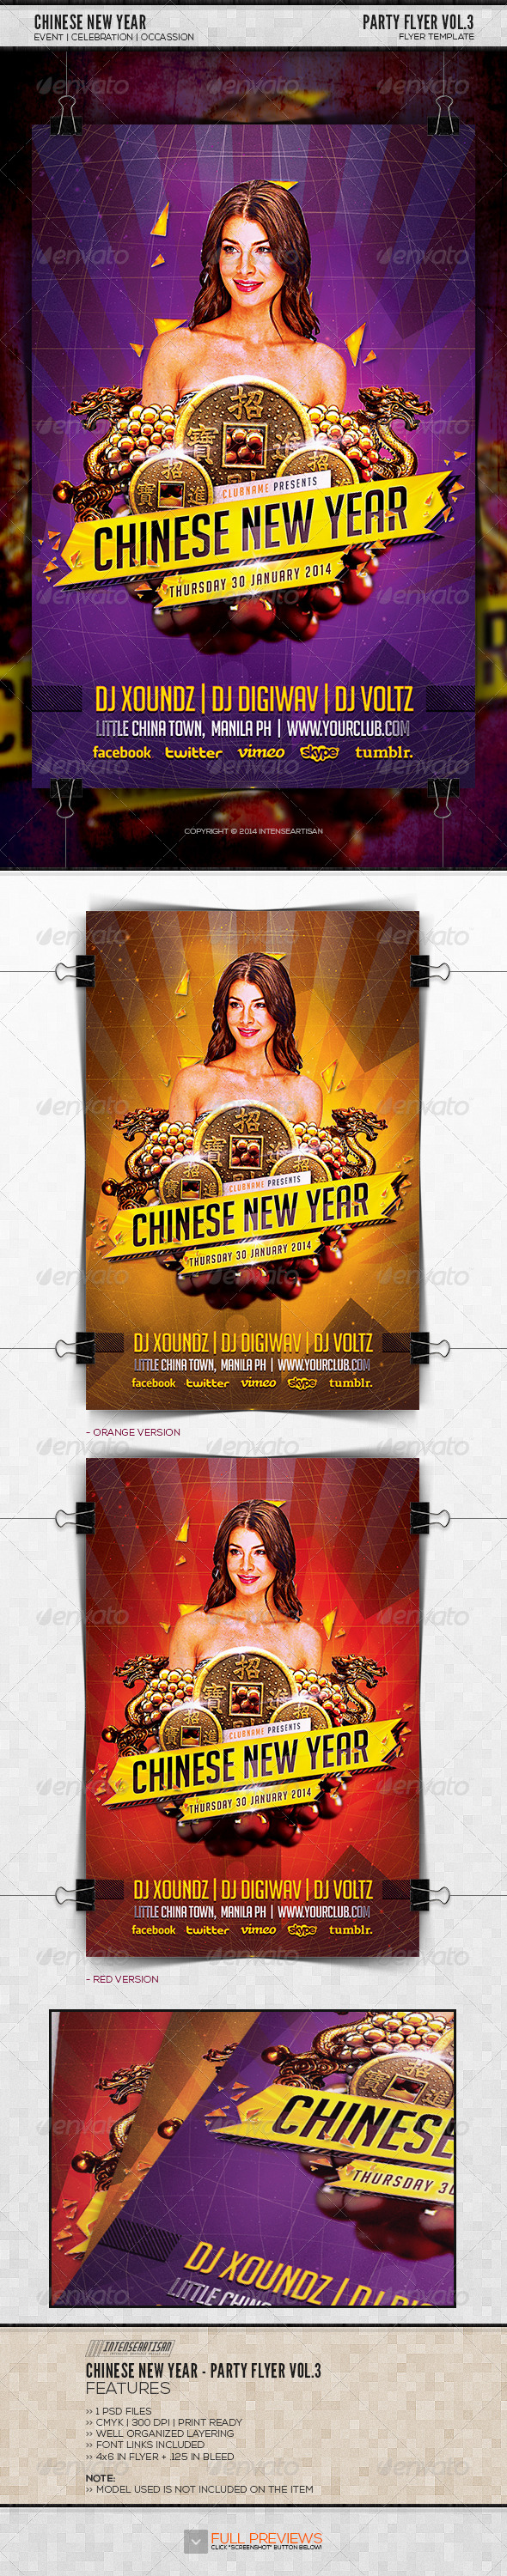 GraphicRiver Chinese New Year Party Flyer Vol.3 6610856